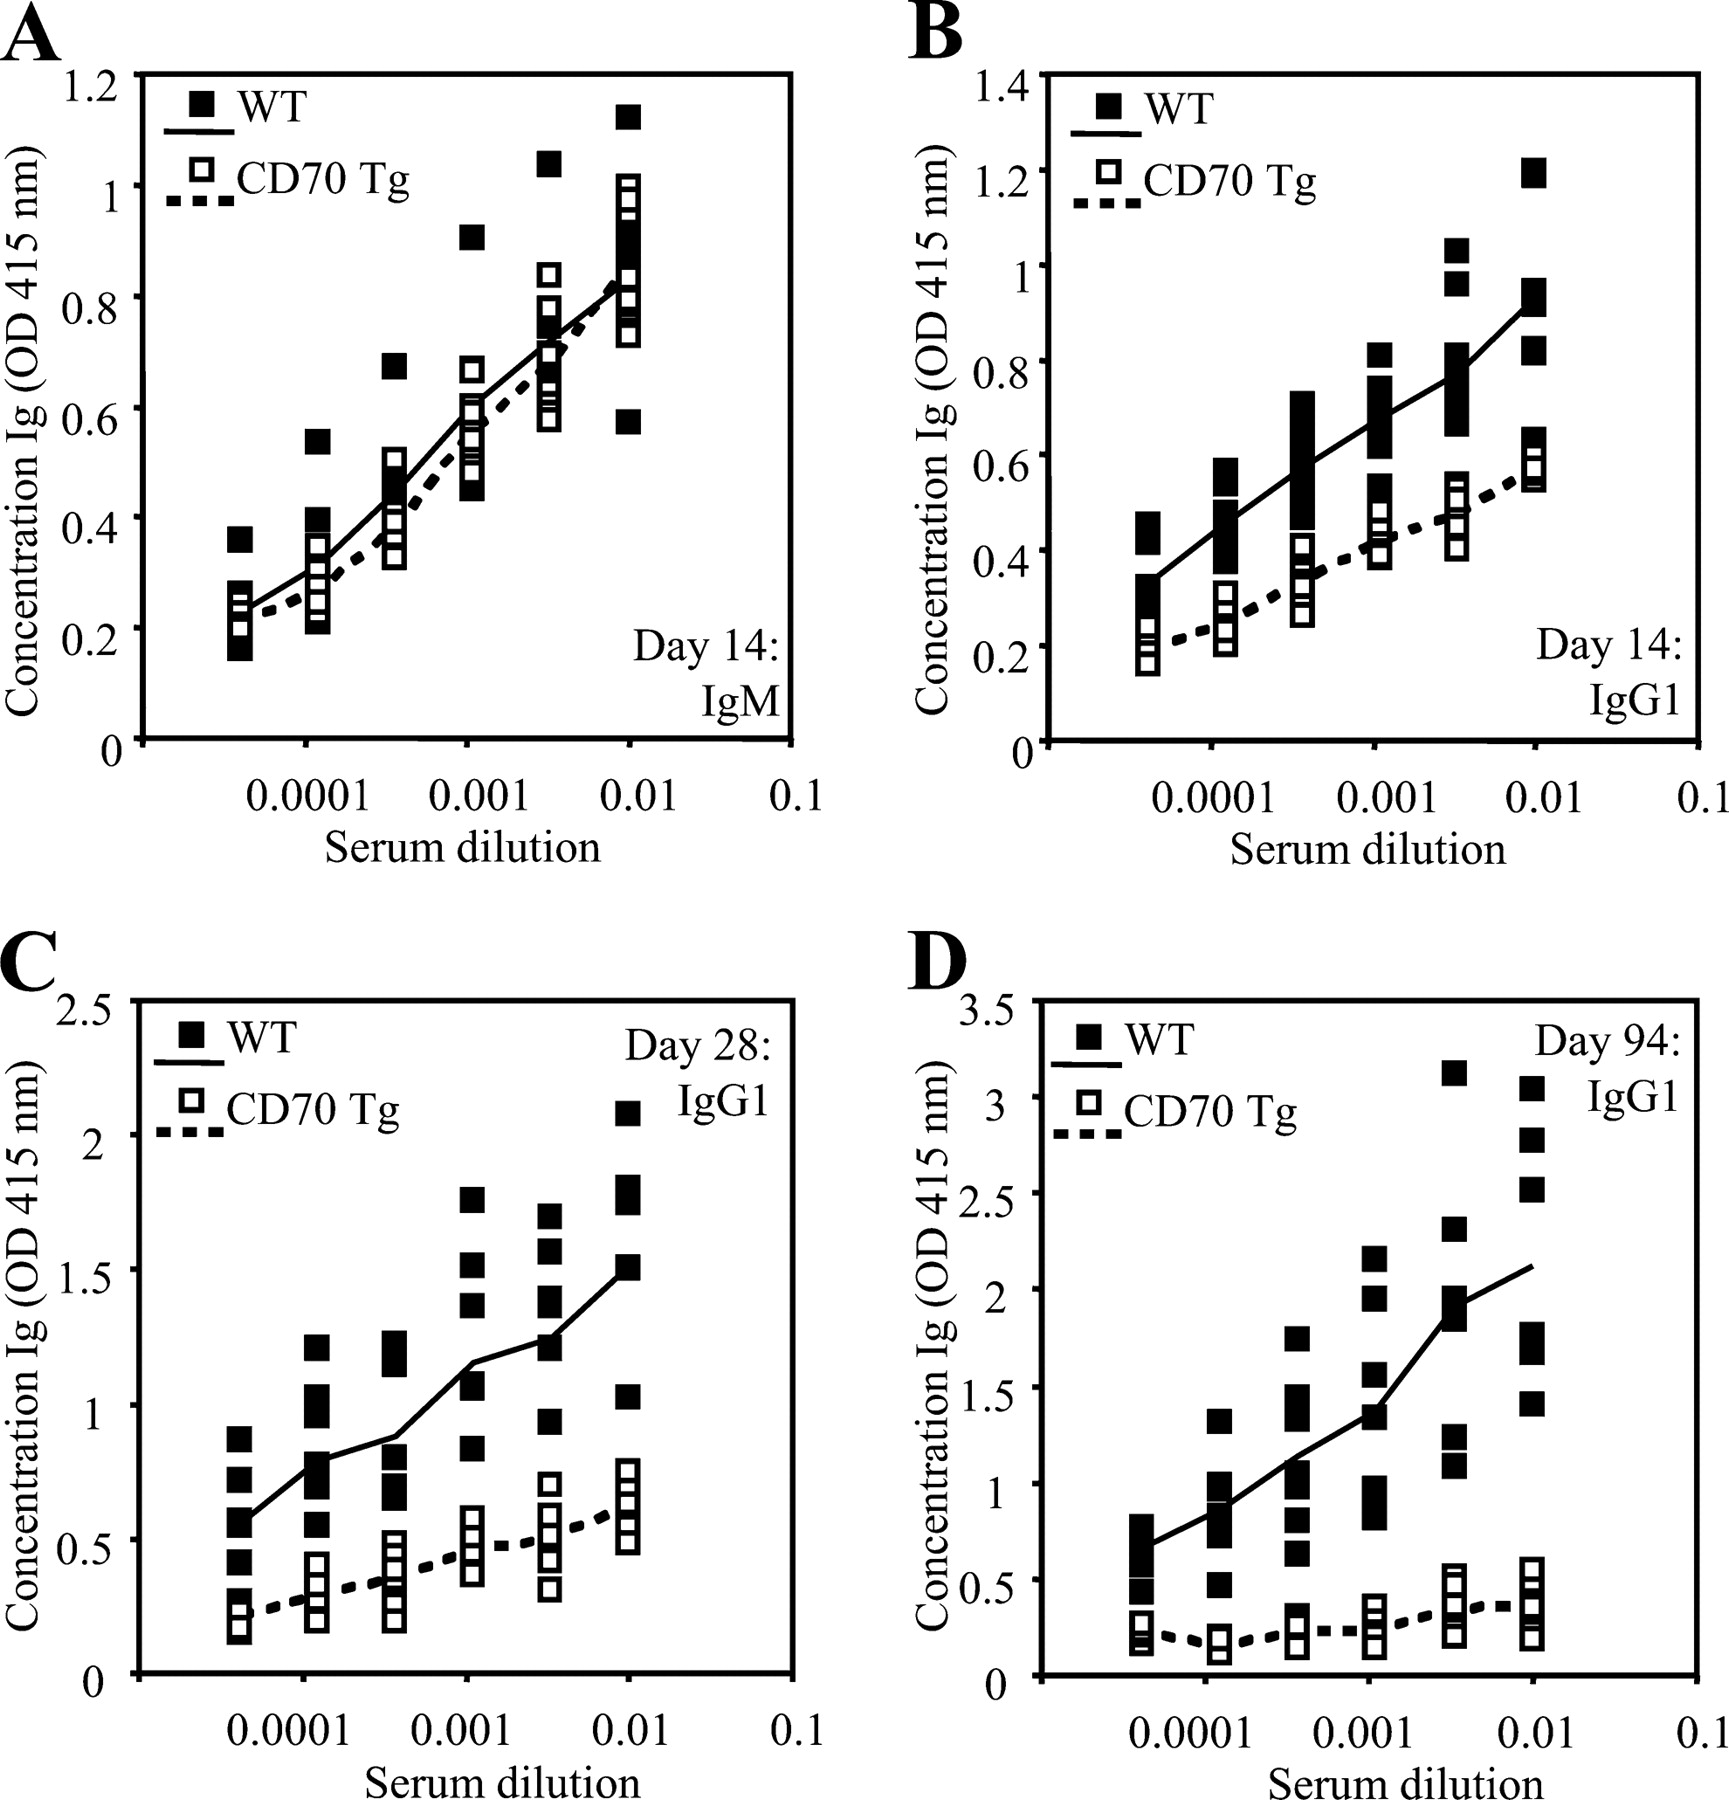 Chronic CD70-Driven Costimulation Impairs IgG Responses by